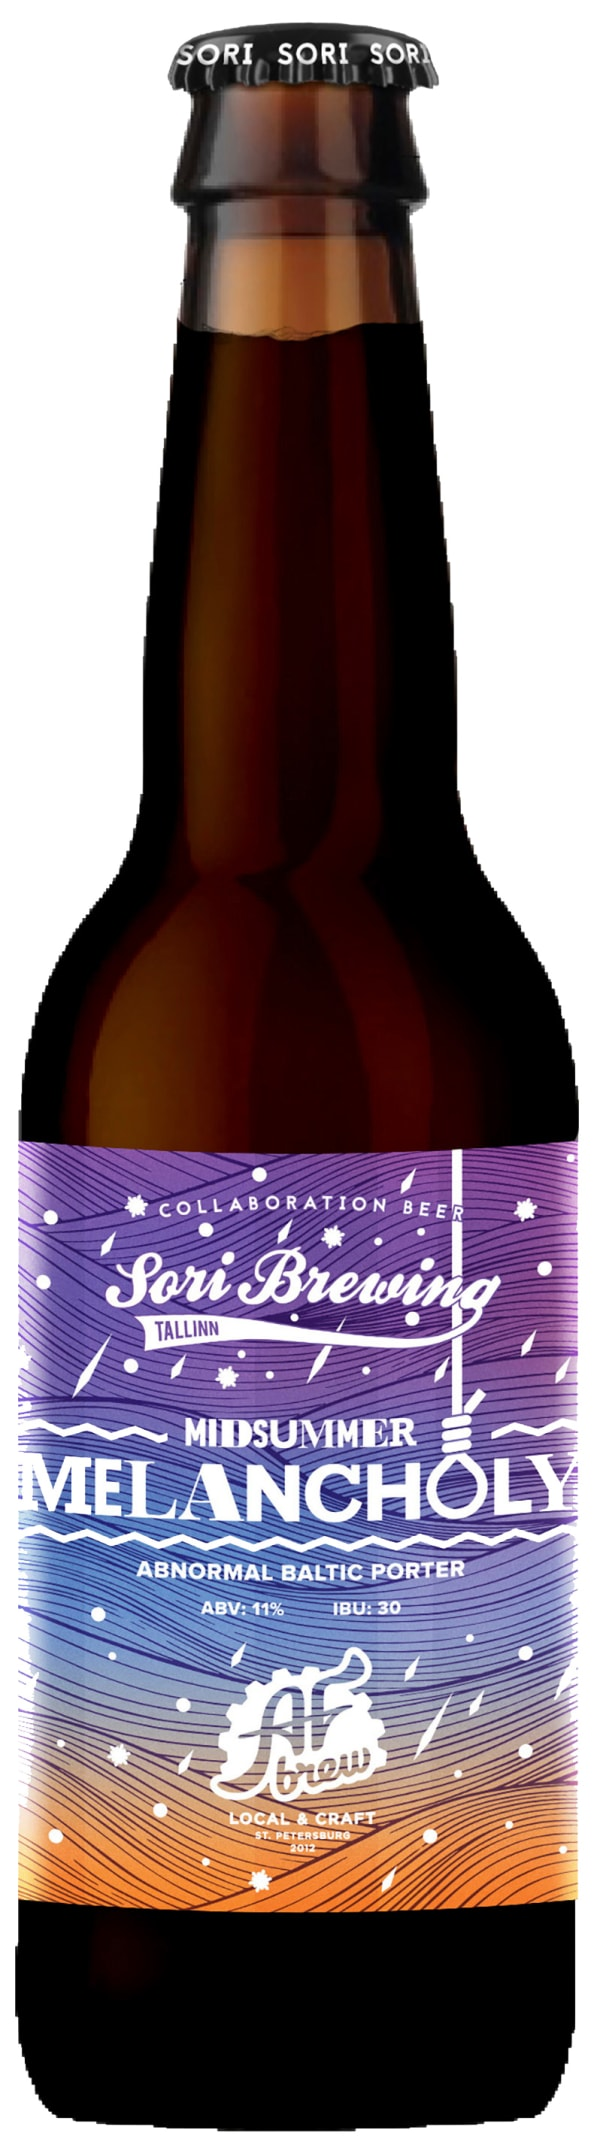 Sori Brewing Midsummer Melancholy